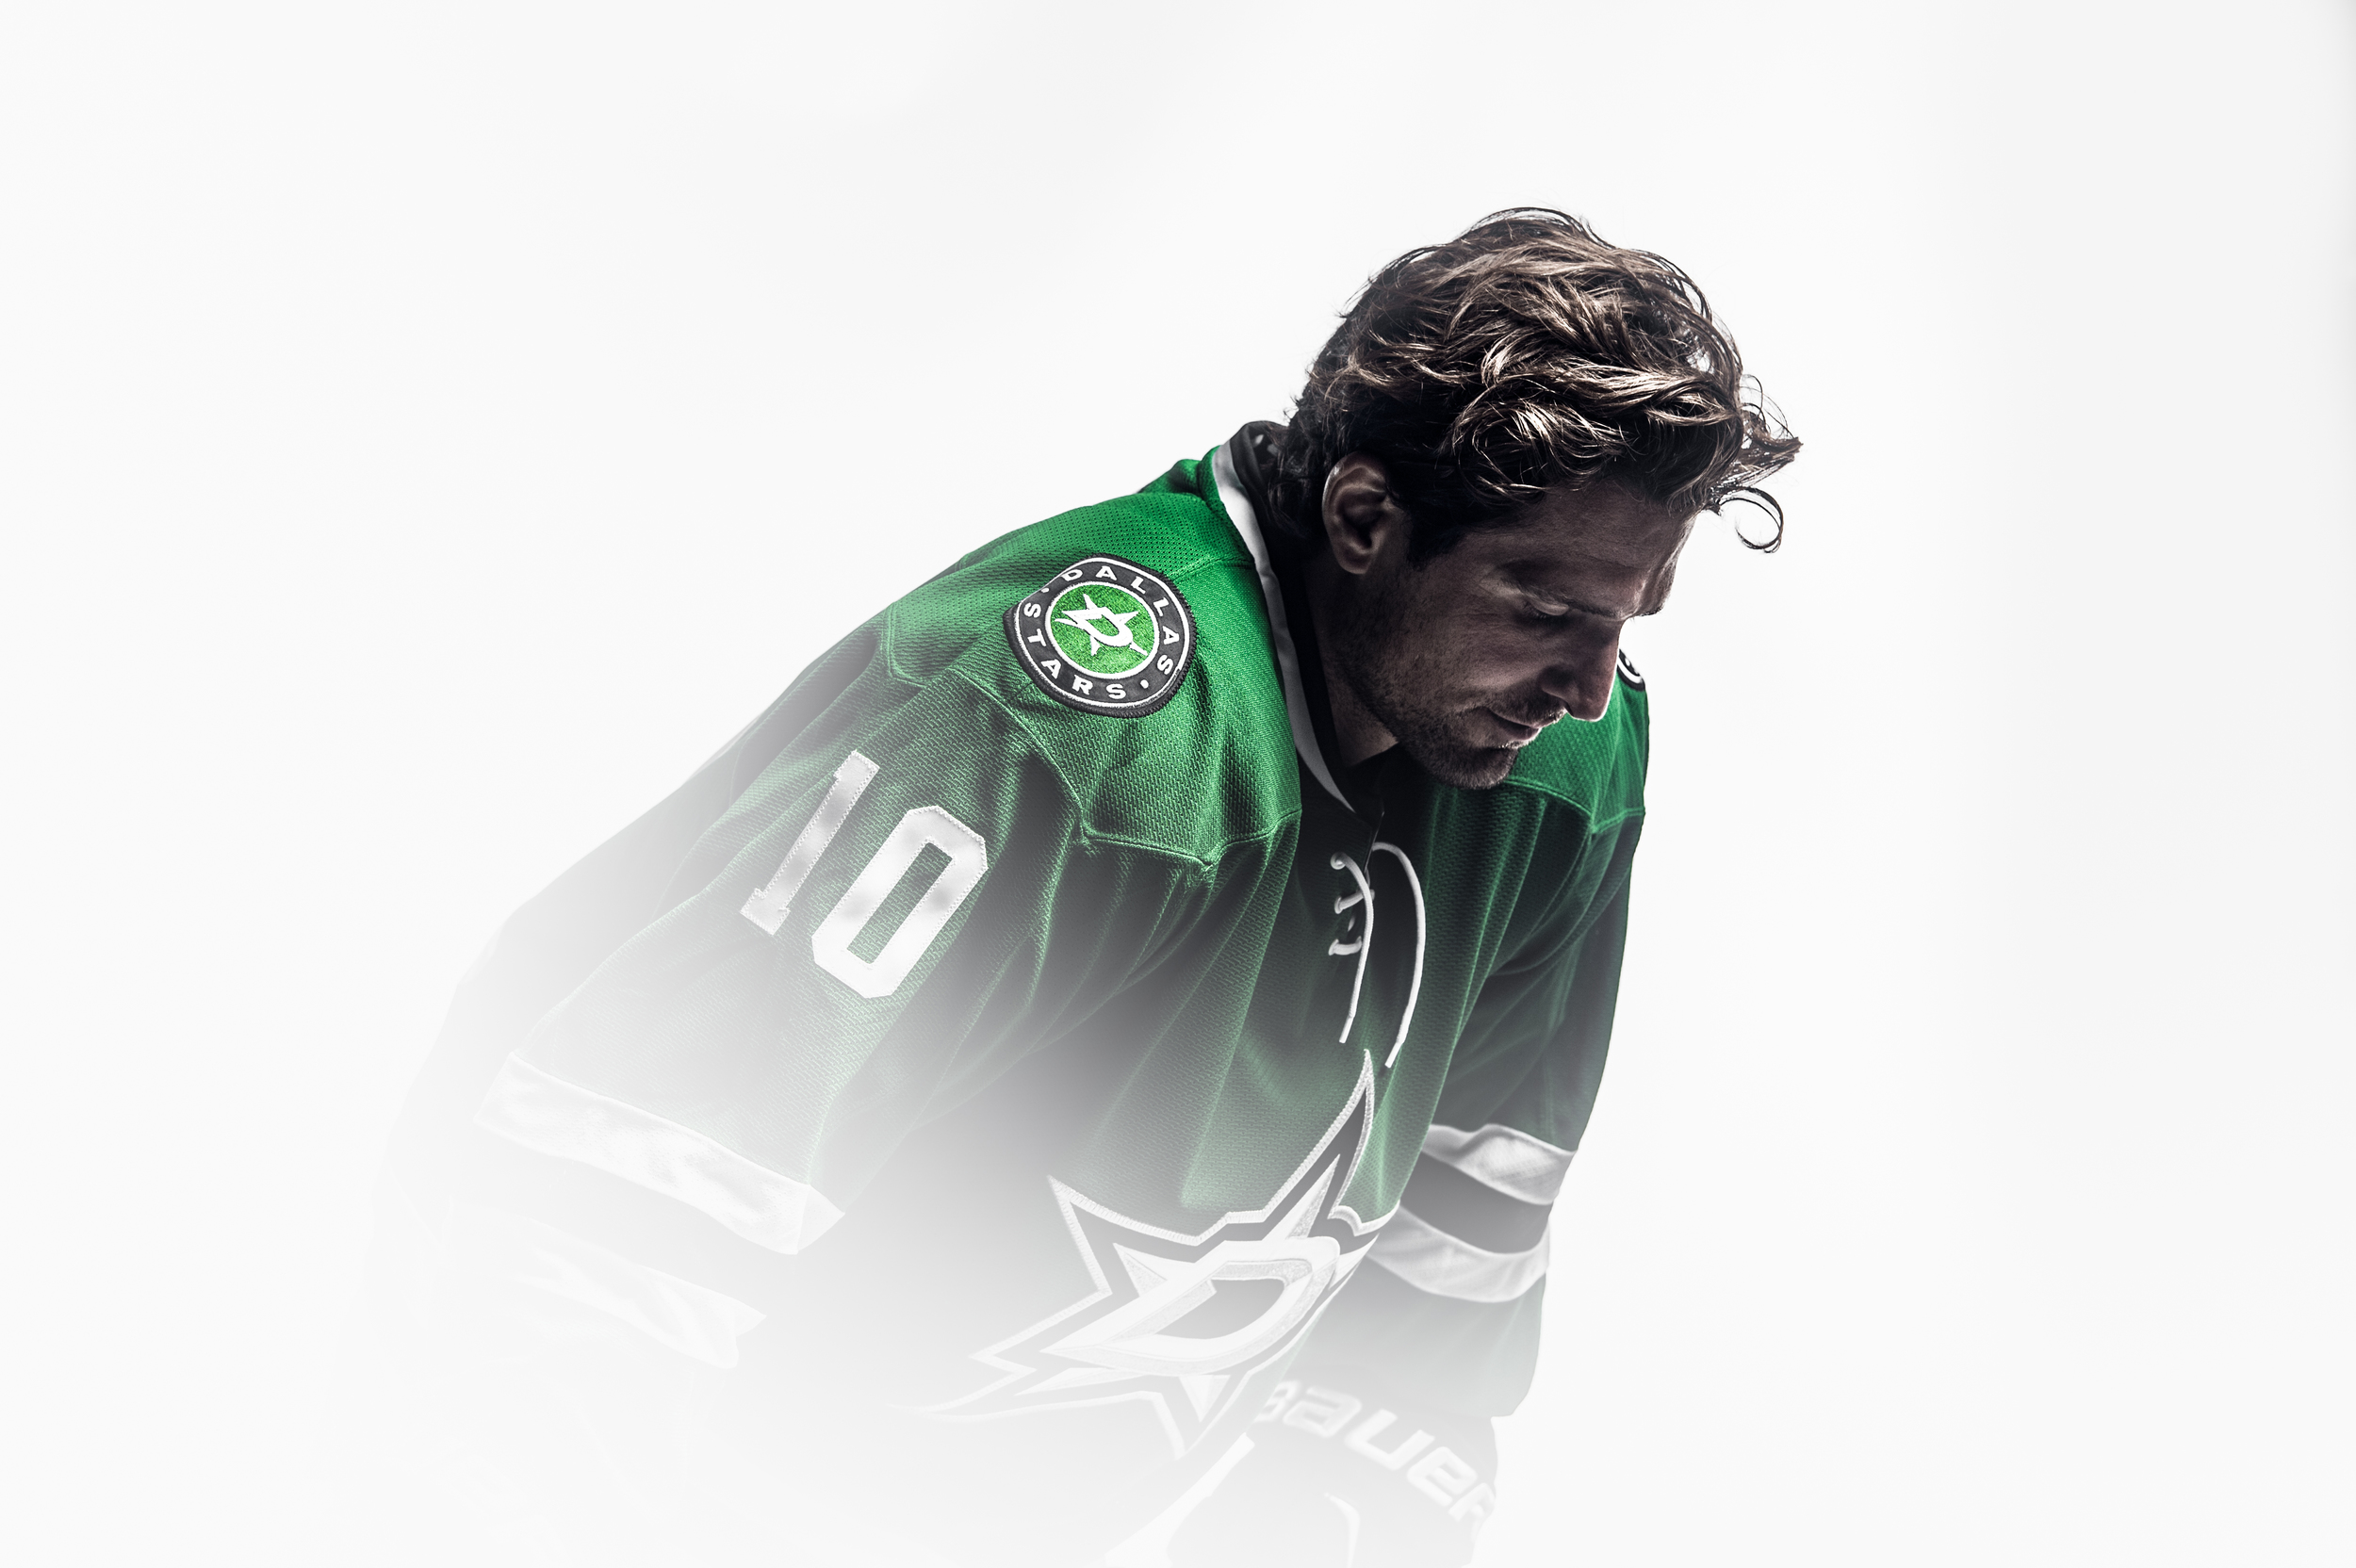 Patrick Sharp - image provided by  www.seanberryphotography.com